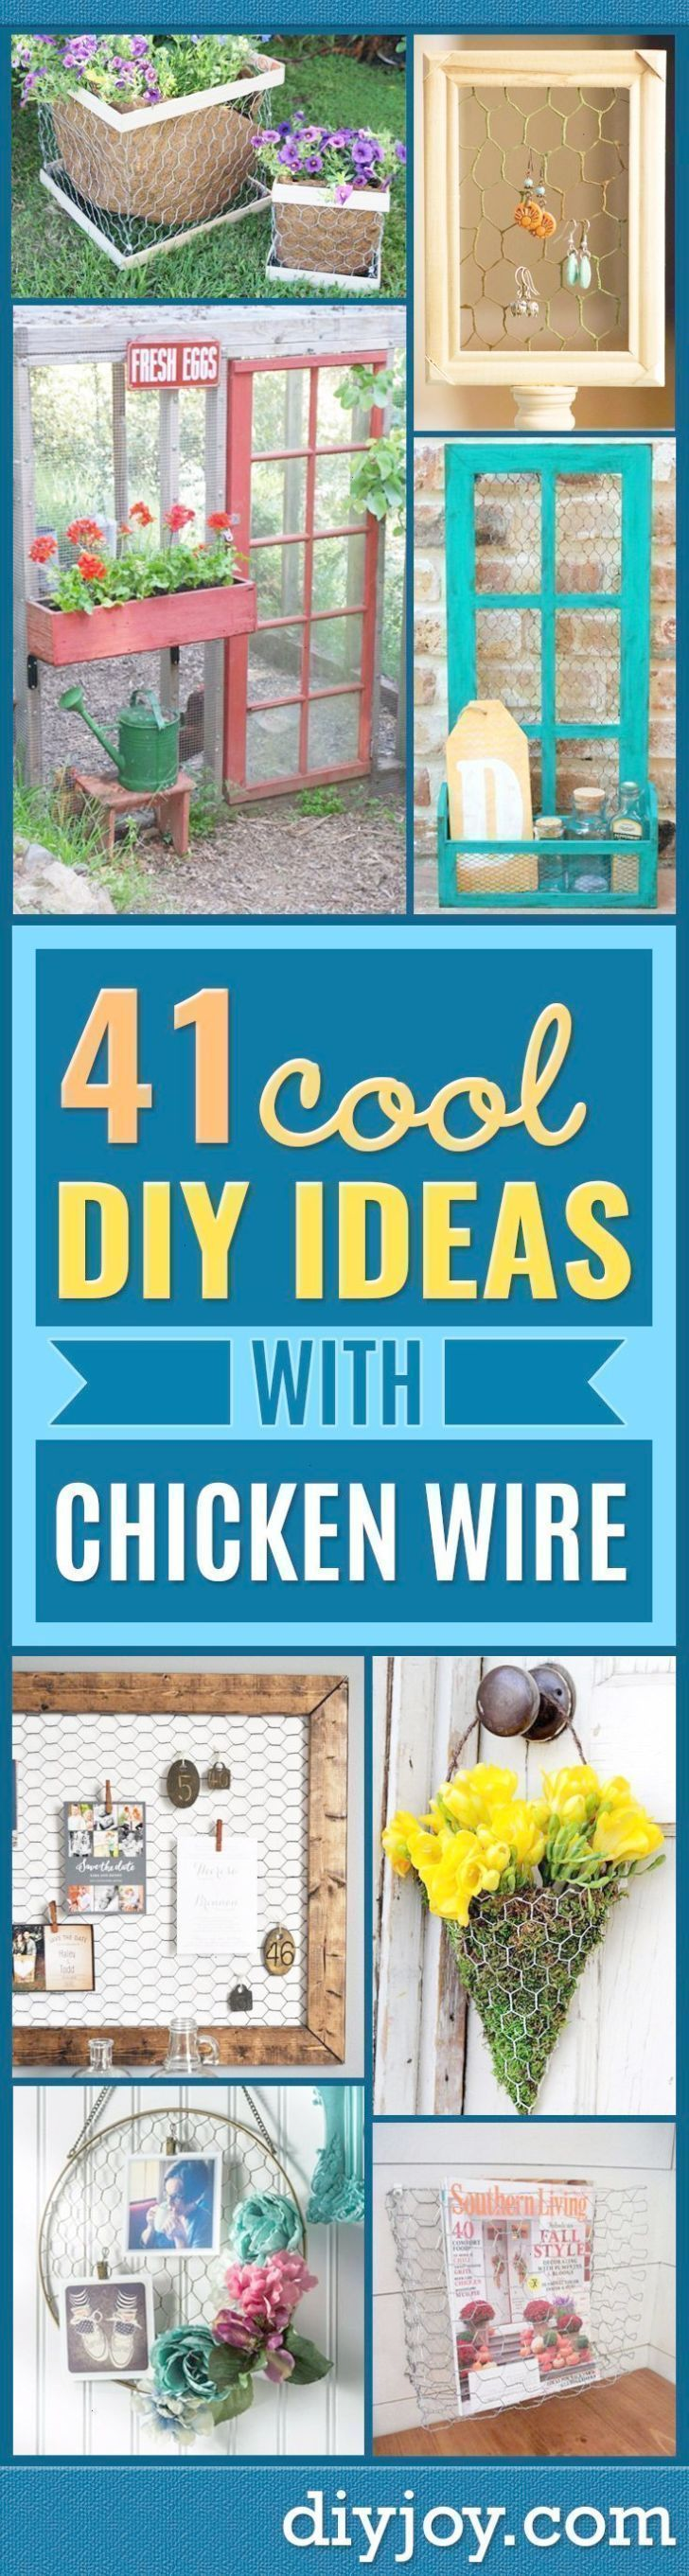 Best Diy Ideas With Chicken Wire  Rustic Farmhouse Decor